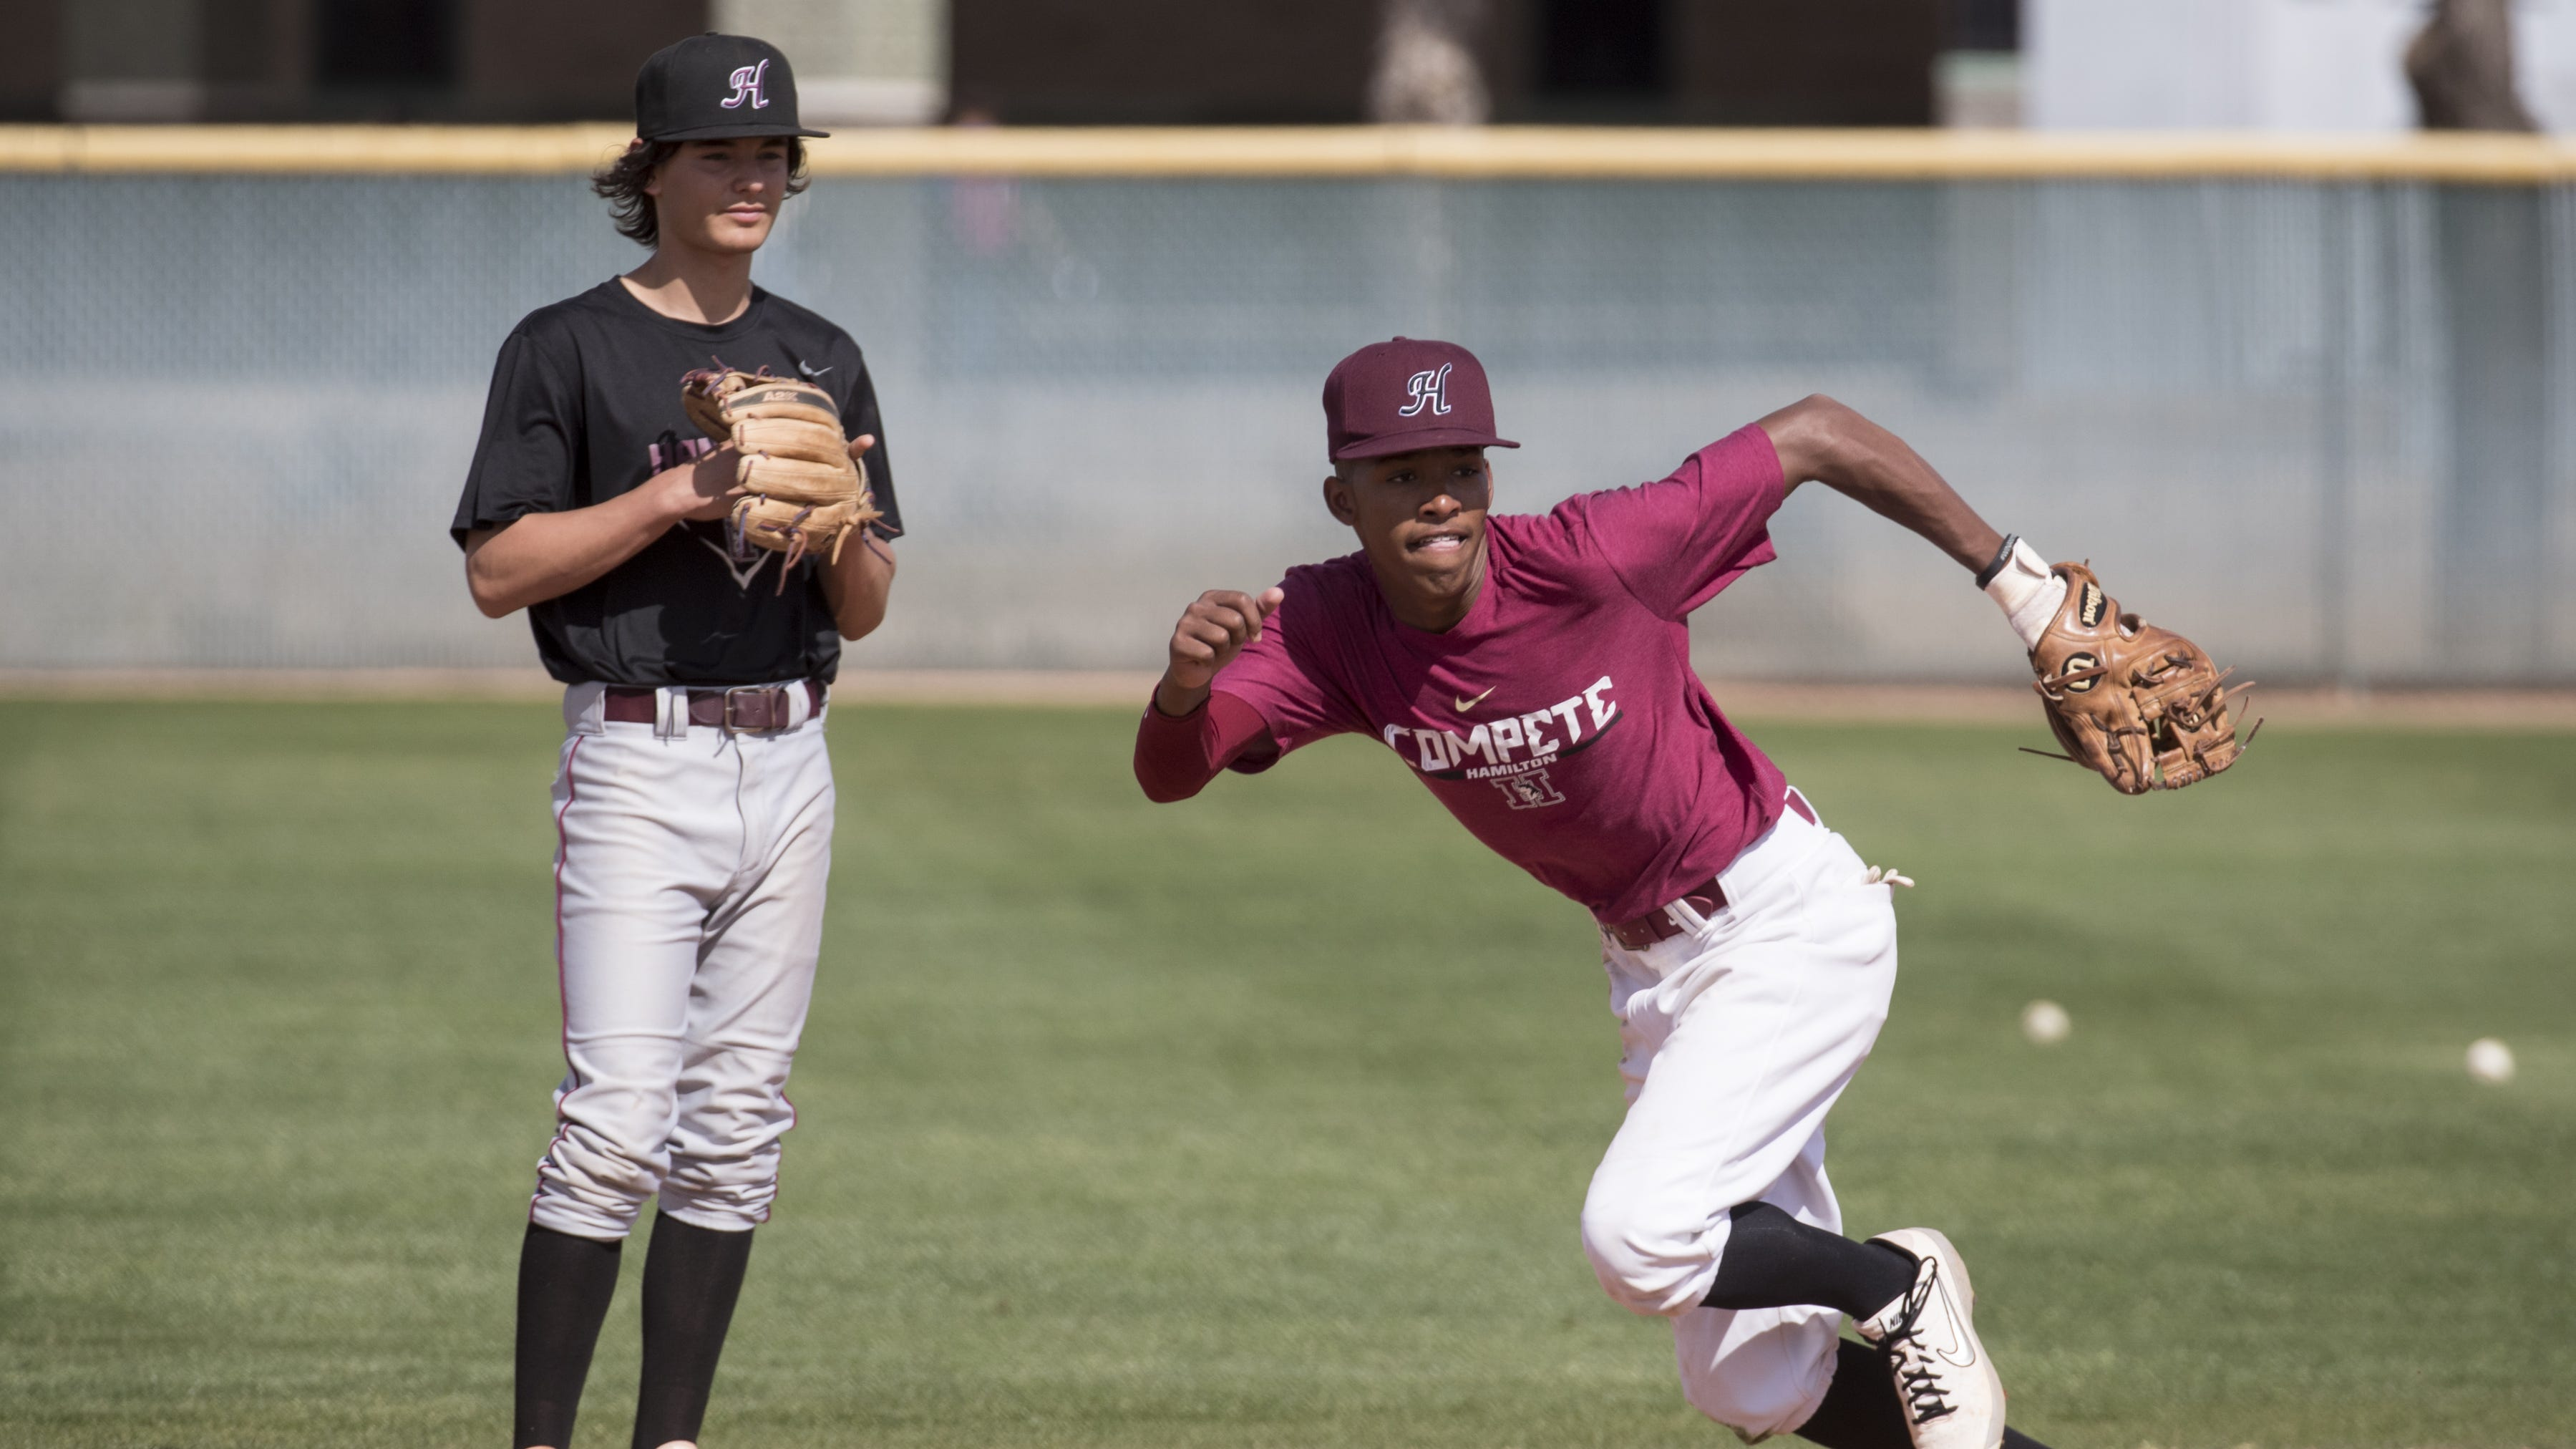 'Nobody like me out there': Black players struggle to find a place in baseball